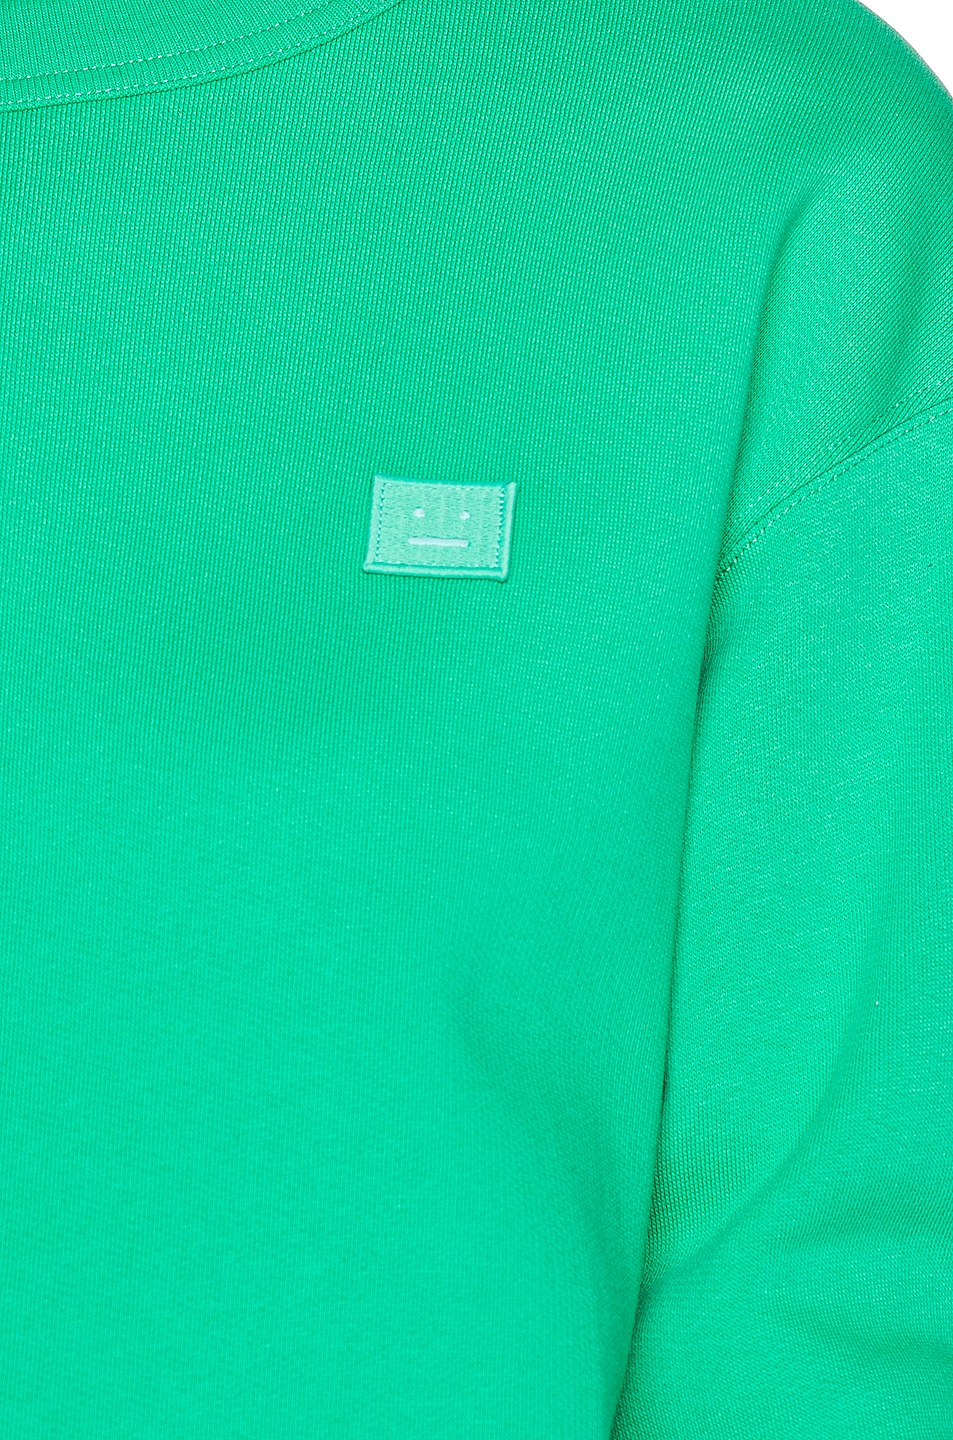 Image 5 of Acne Studios Fairview Face Pullover Sweatshirt in Emerald Green